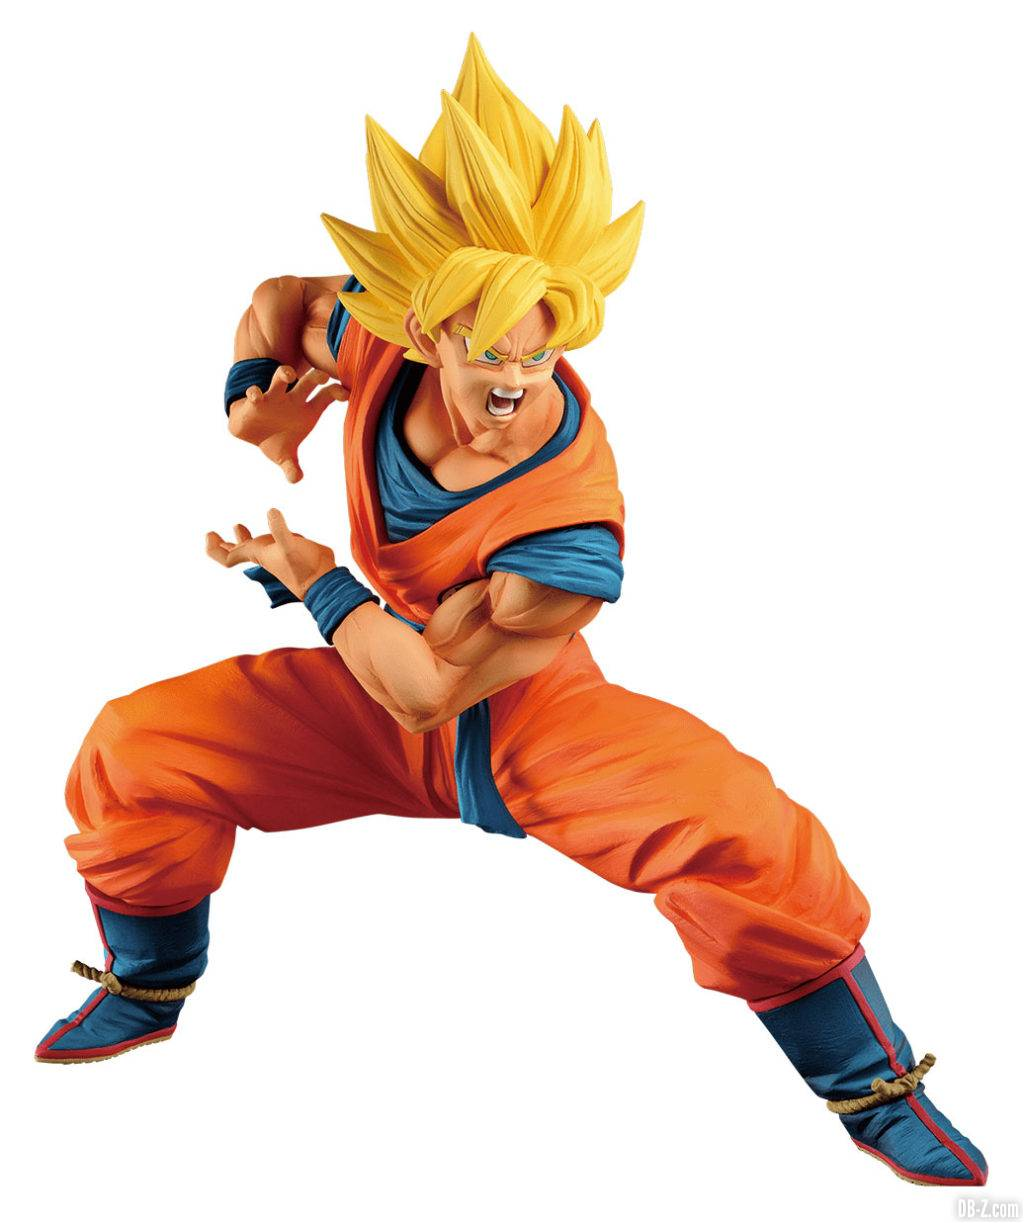 Figurine Goku Super Saiyan Goku Day 2019